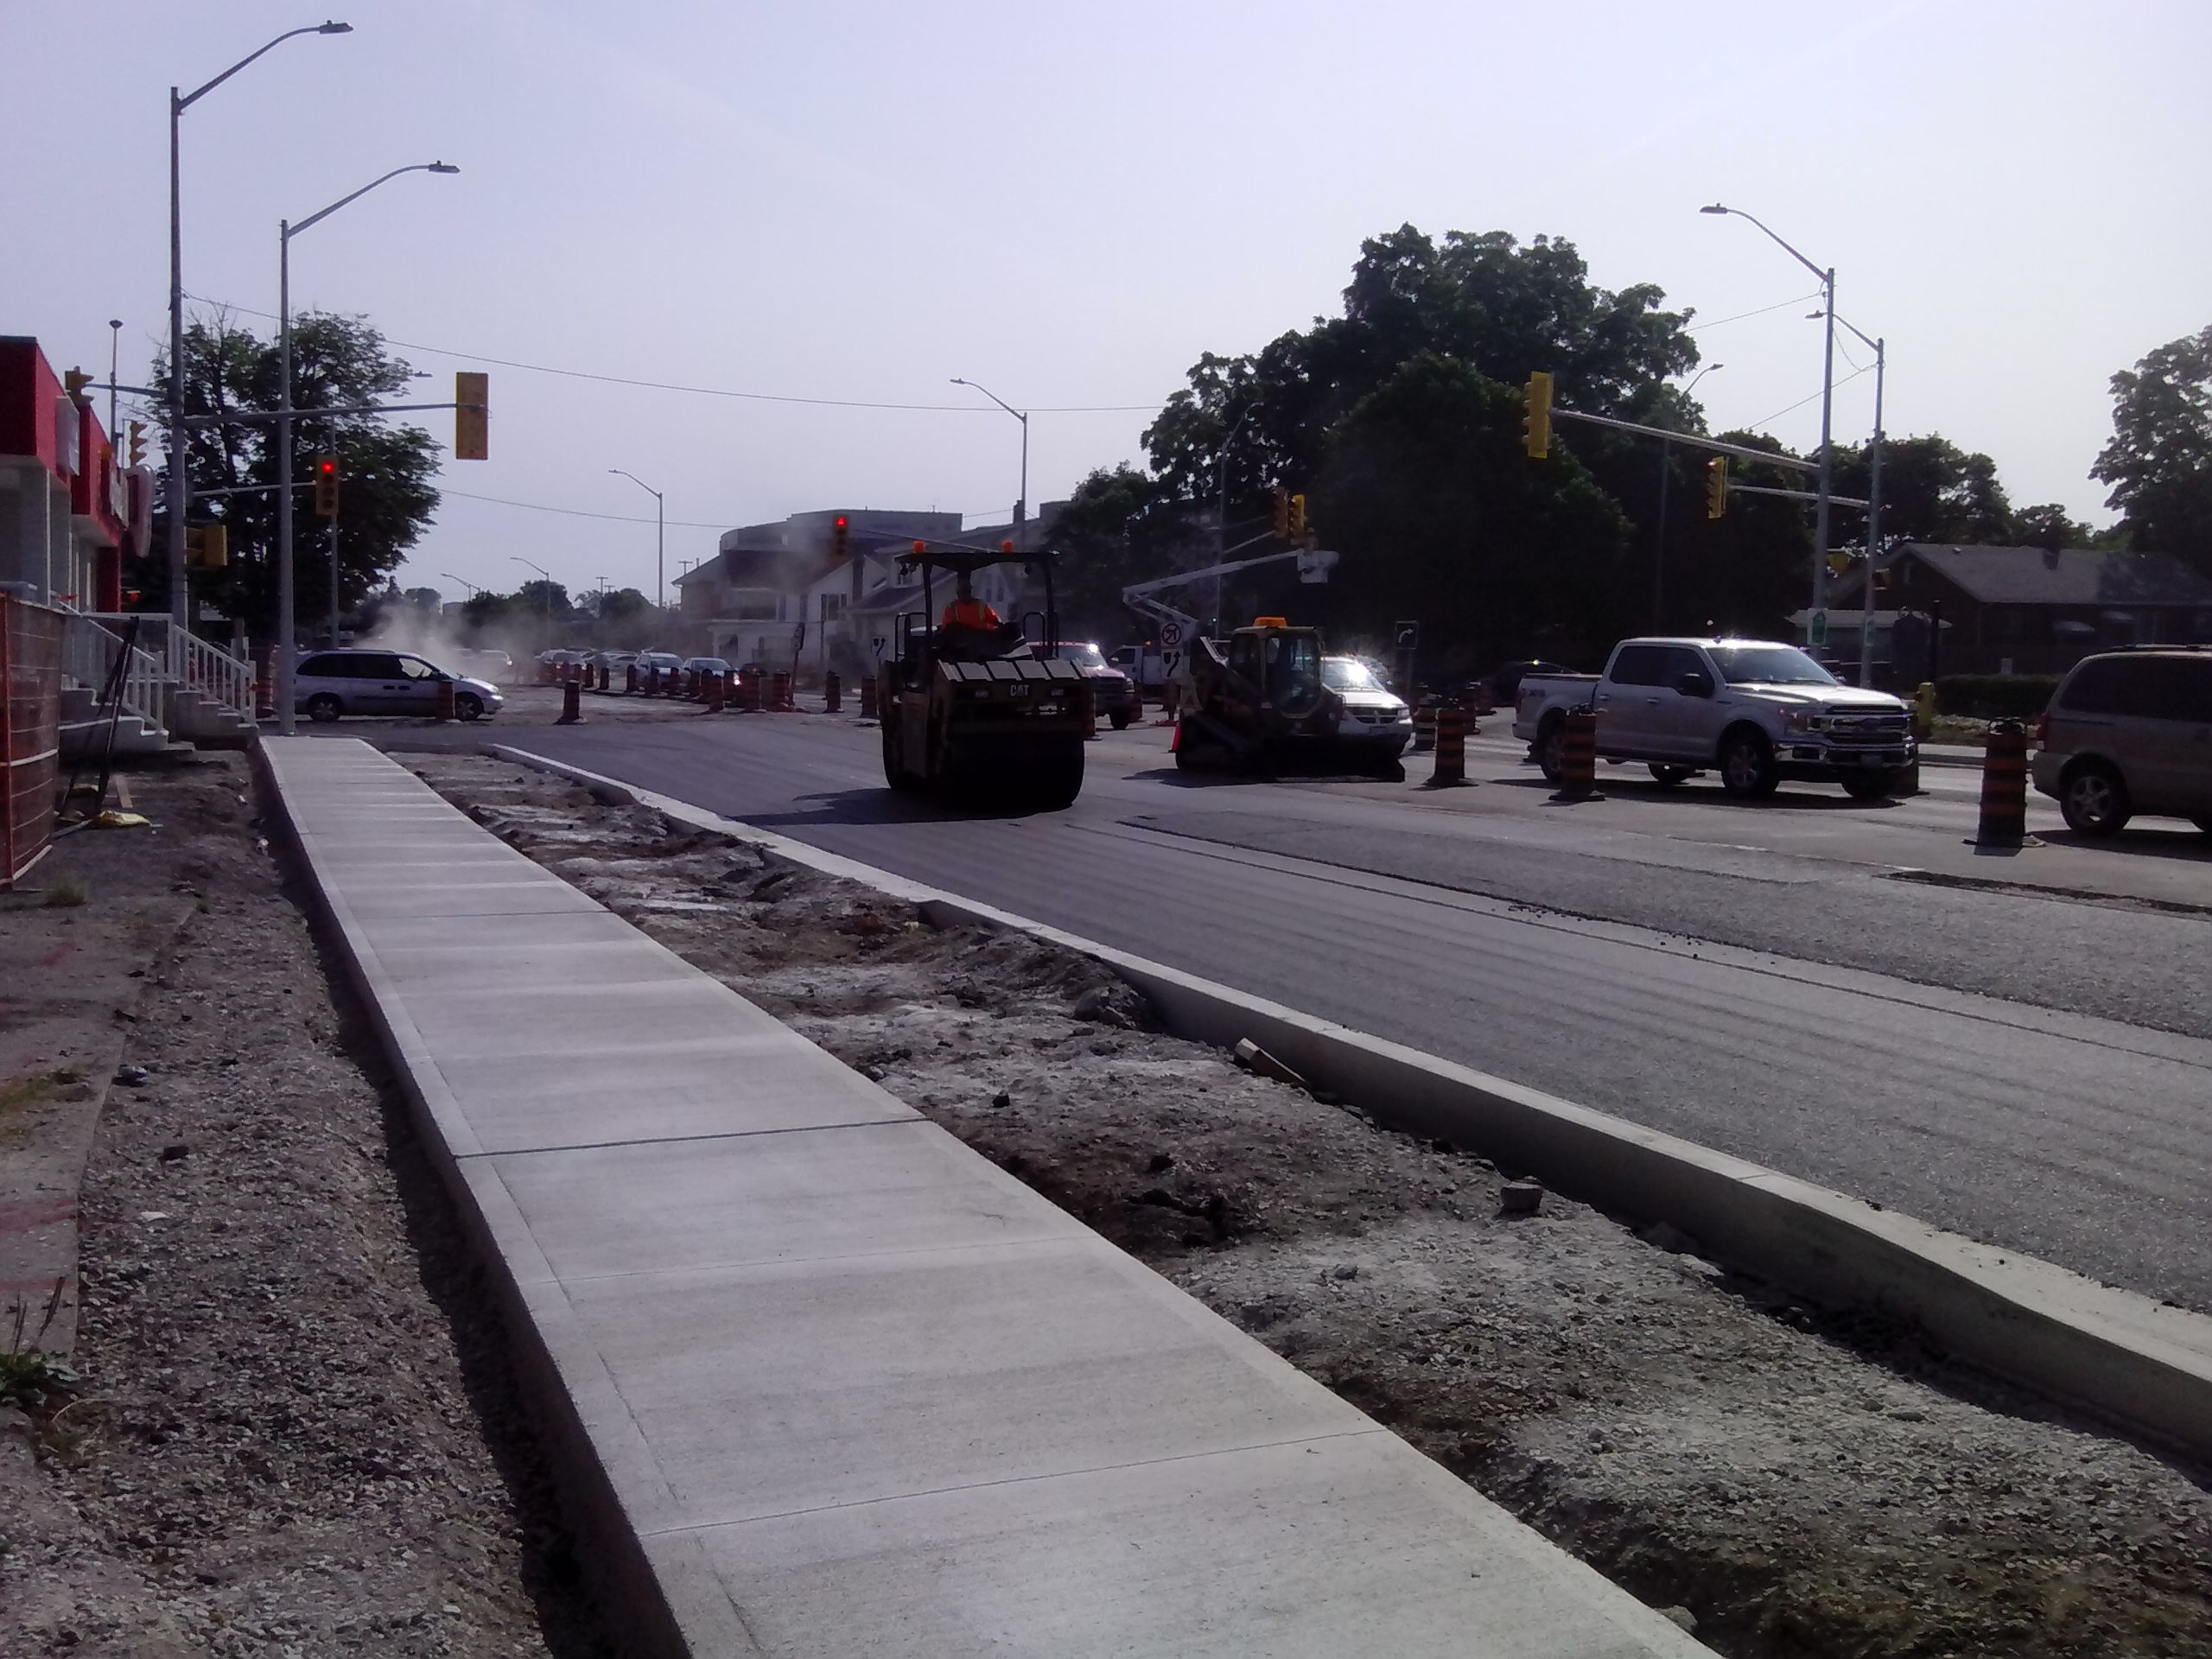 New sidewalk installed and roller flattening new pavement beside traffic